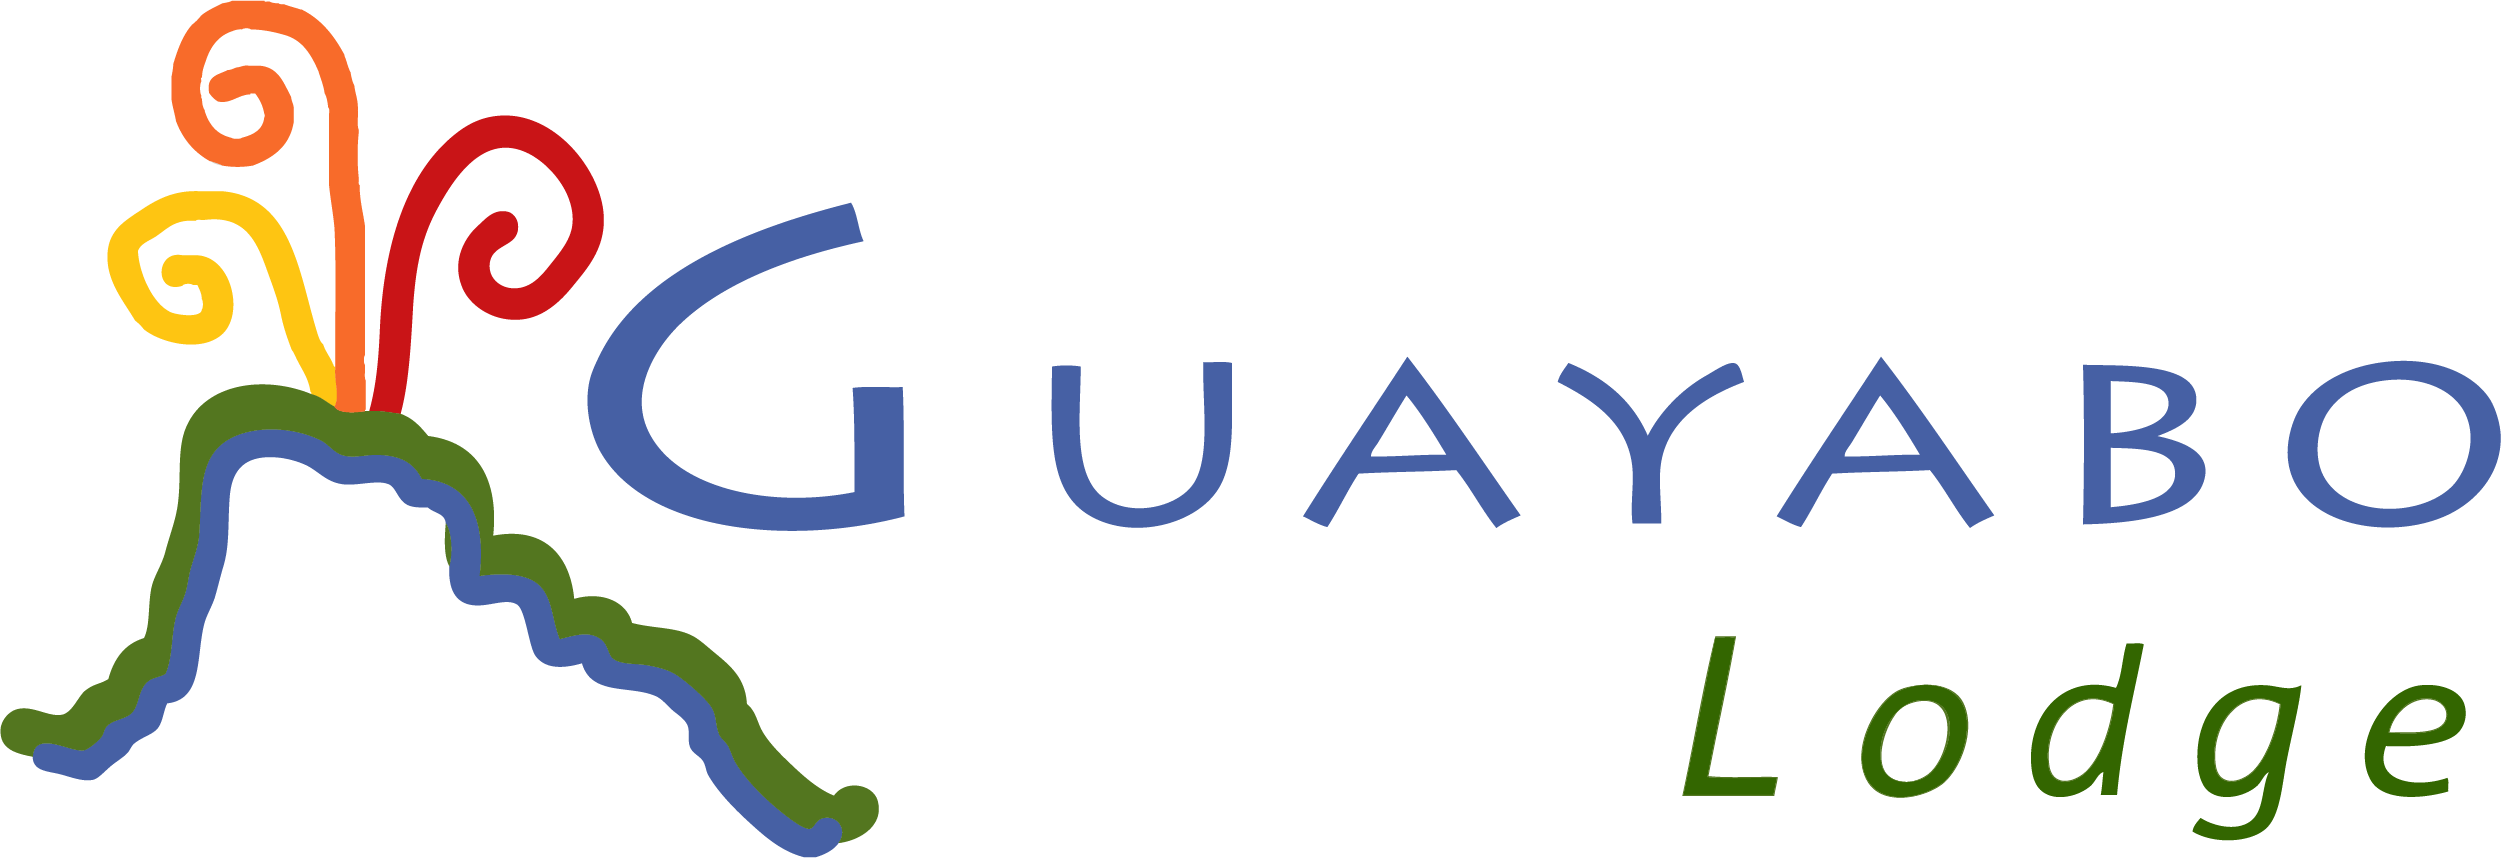 Guayabo Lodge hotel costa rica official logo 2019